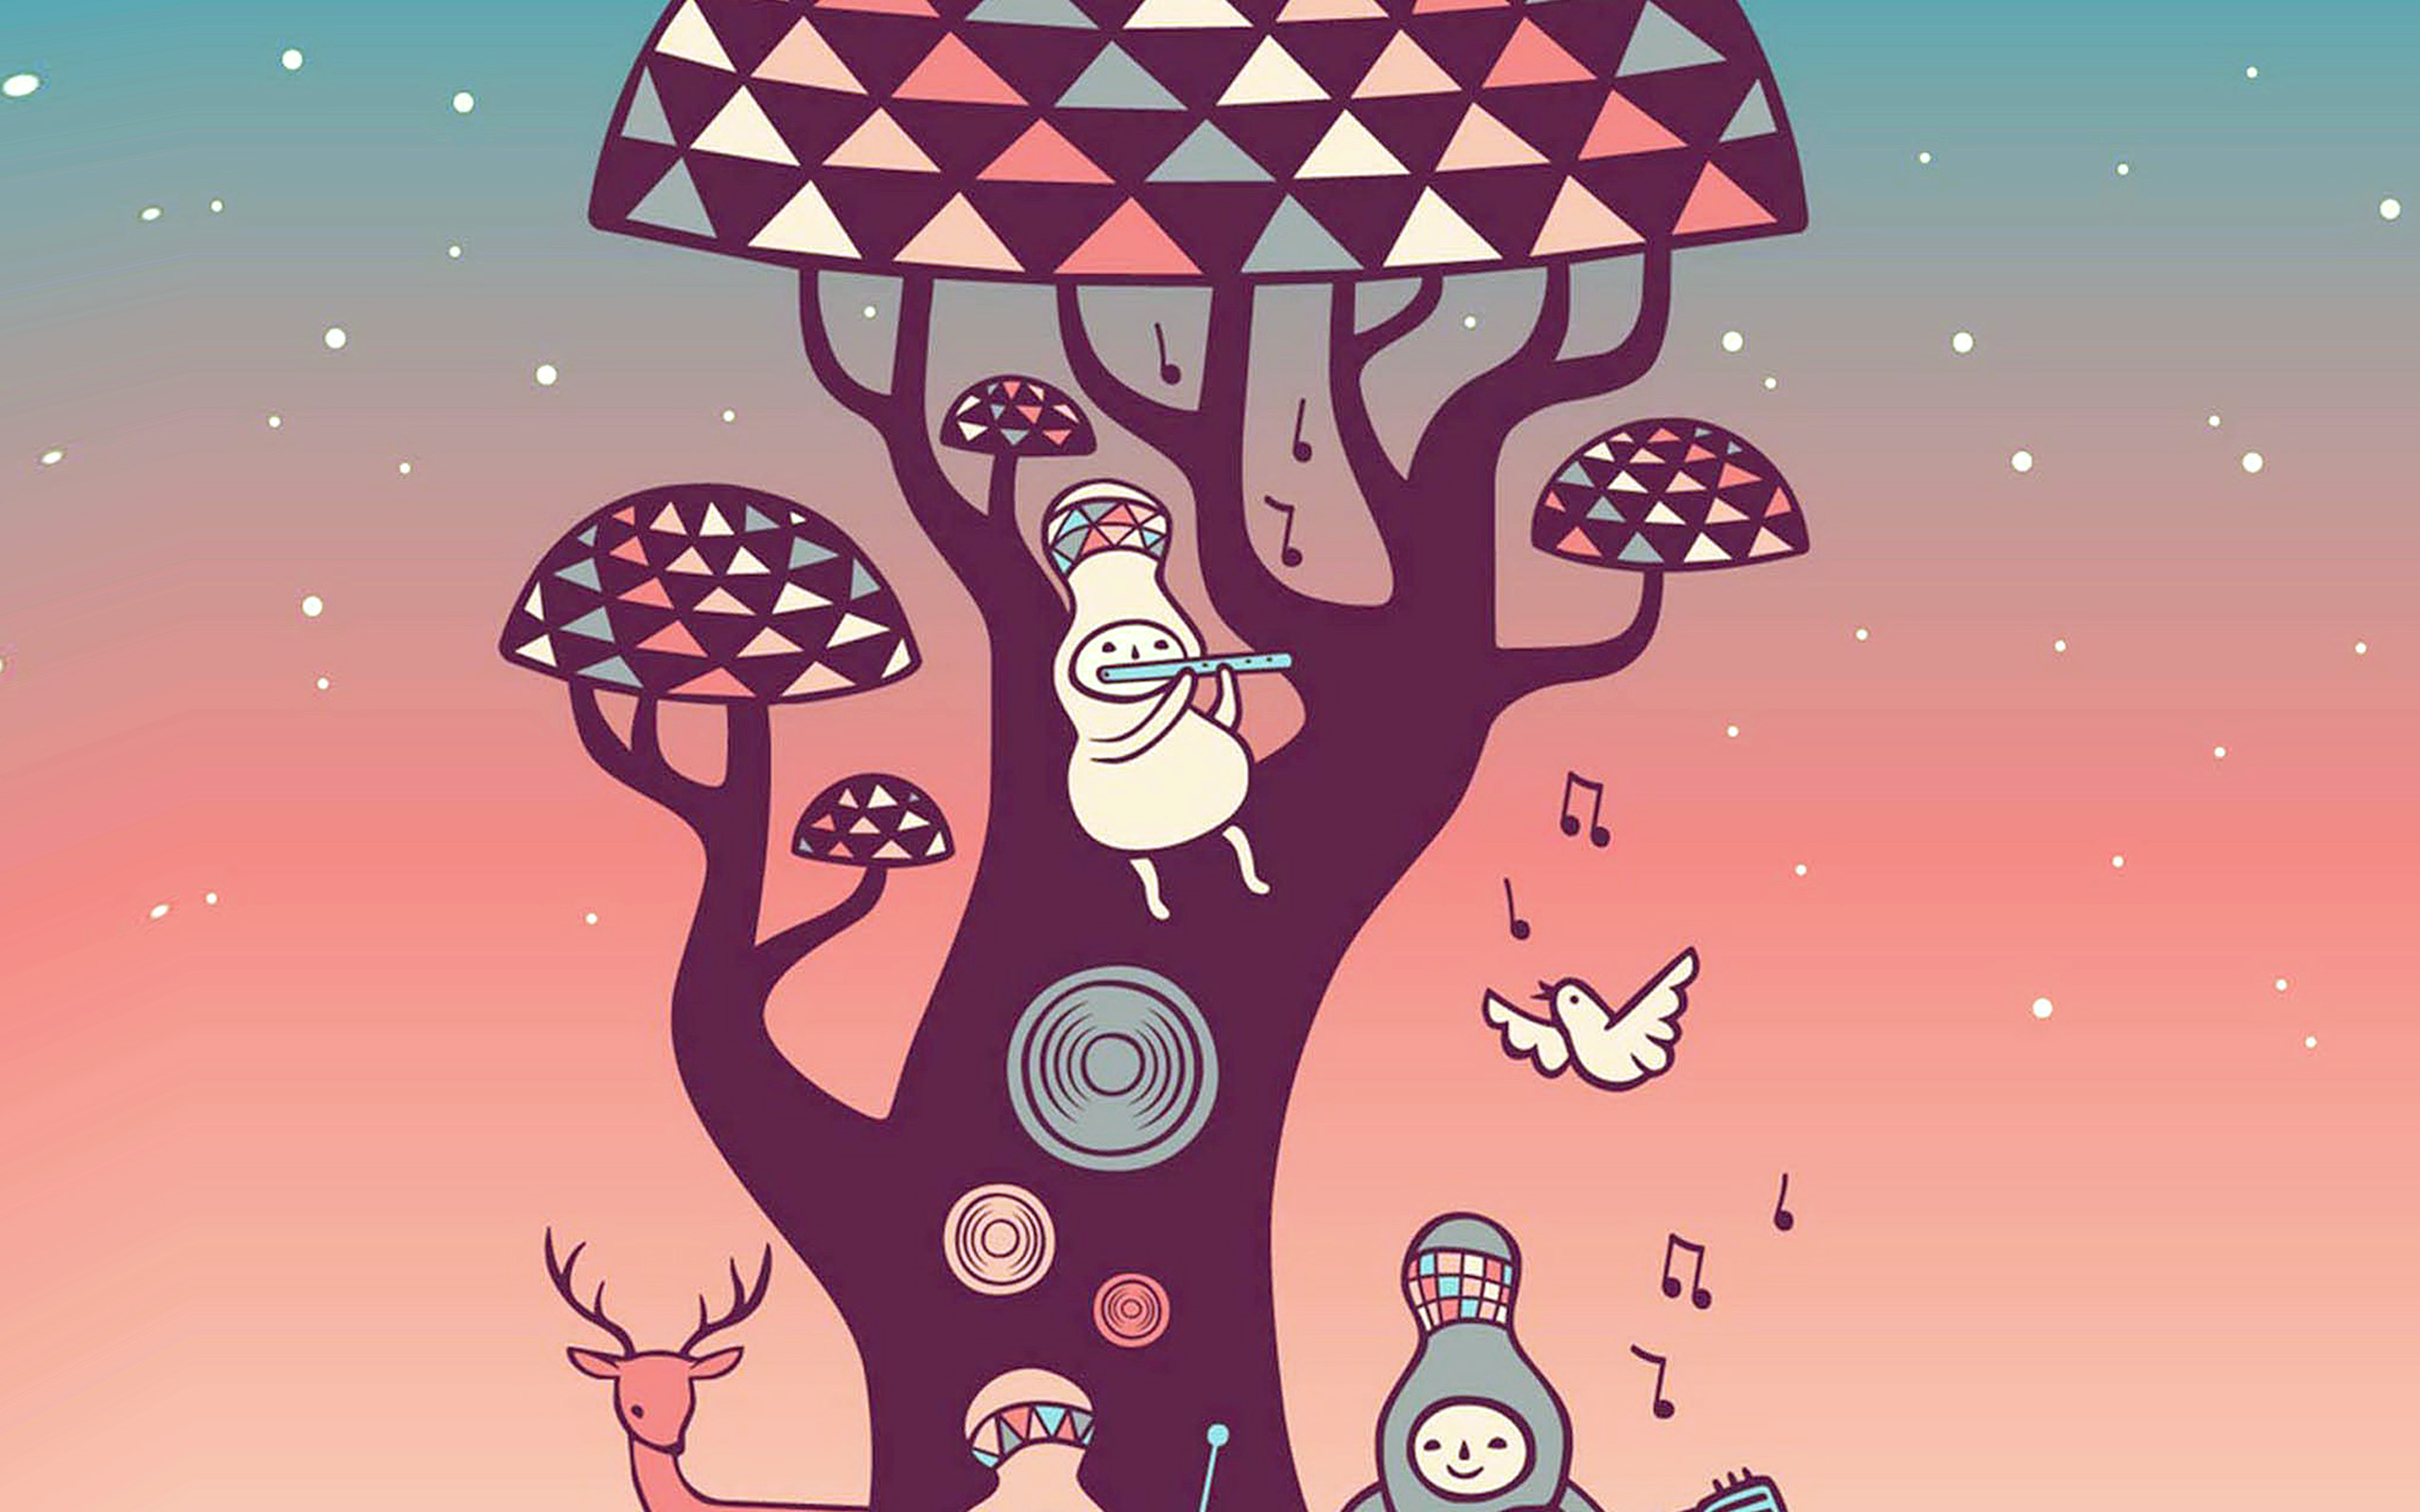 Cute Animal Wallpaper For Computer Ax18 Cute Music Characters Illustration Art Red Wallpaper